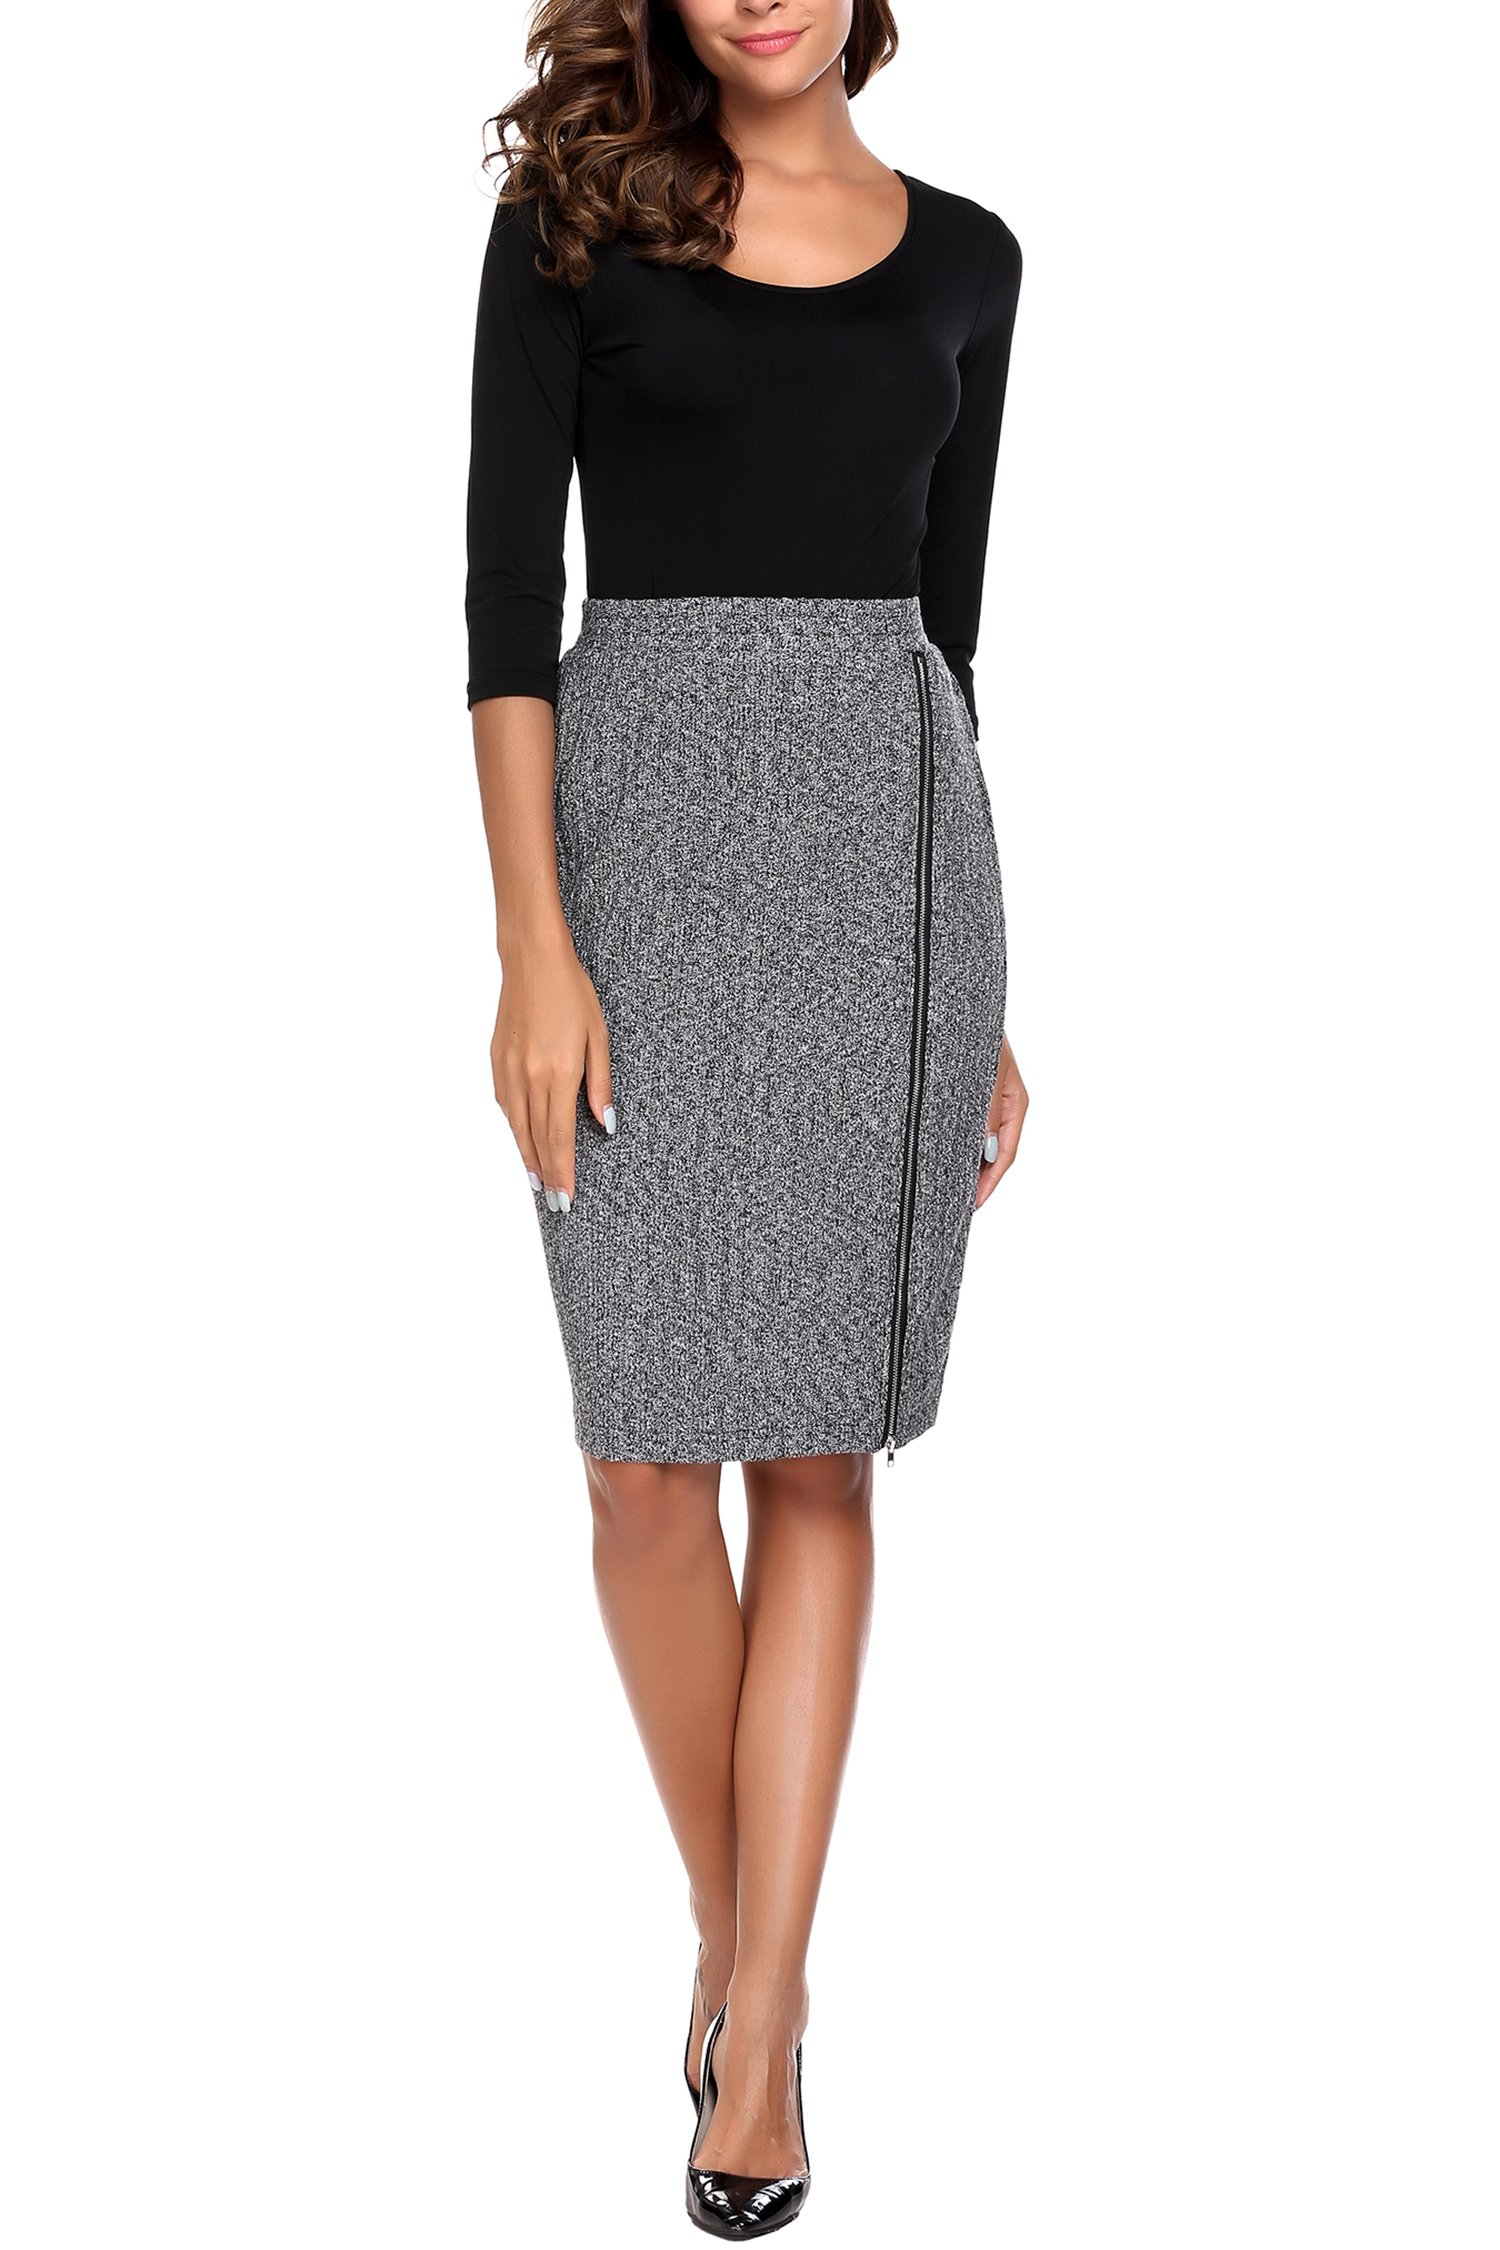 Zeagoo Midi Bandage Pencil Skirt Grey Stretchy Bodycon Slit Fitted Knit Formal Skirts for Women